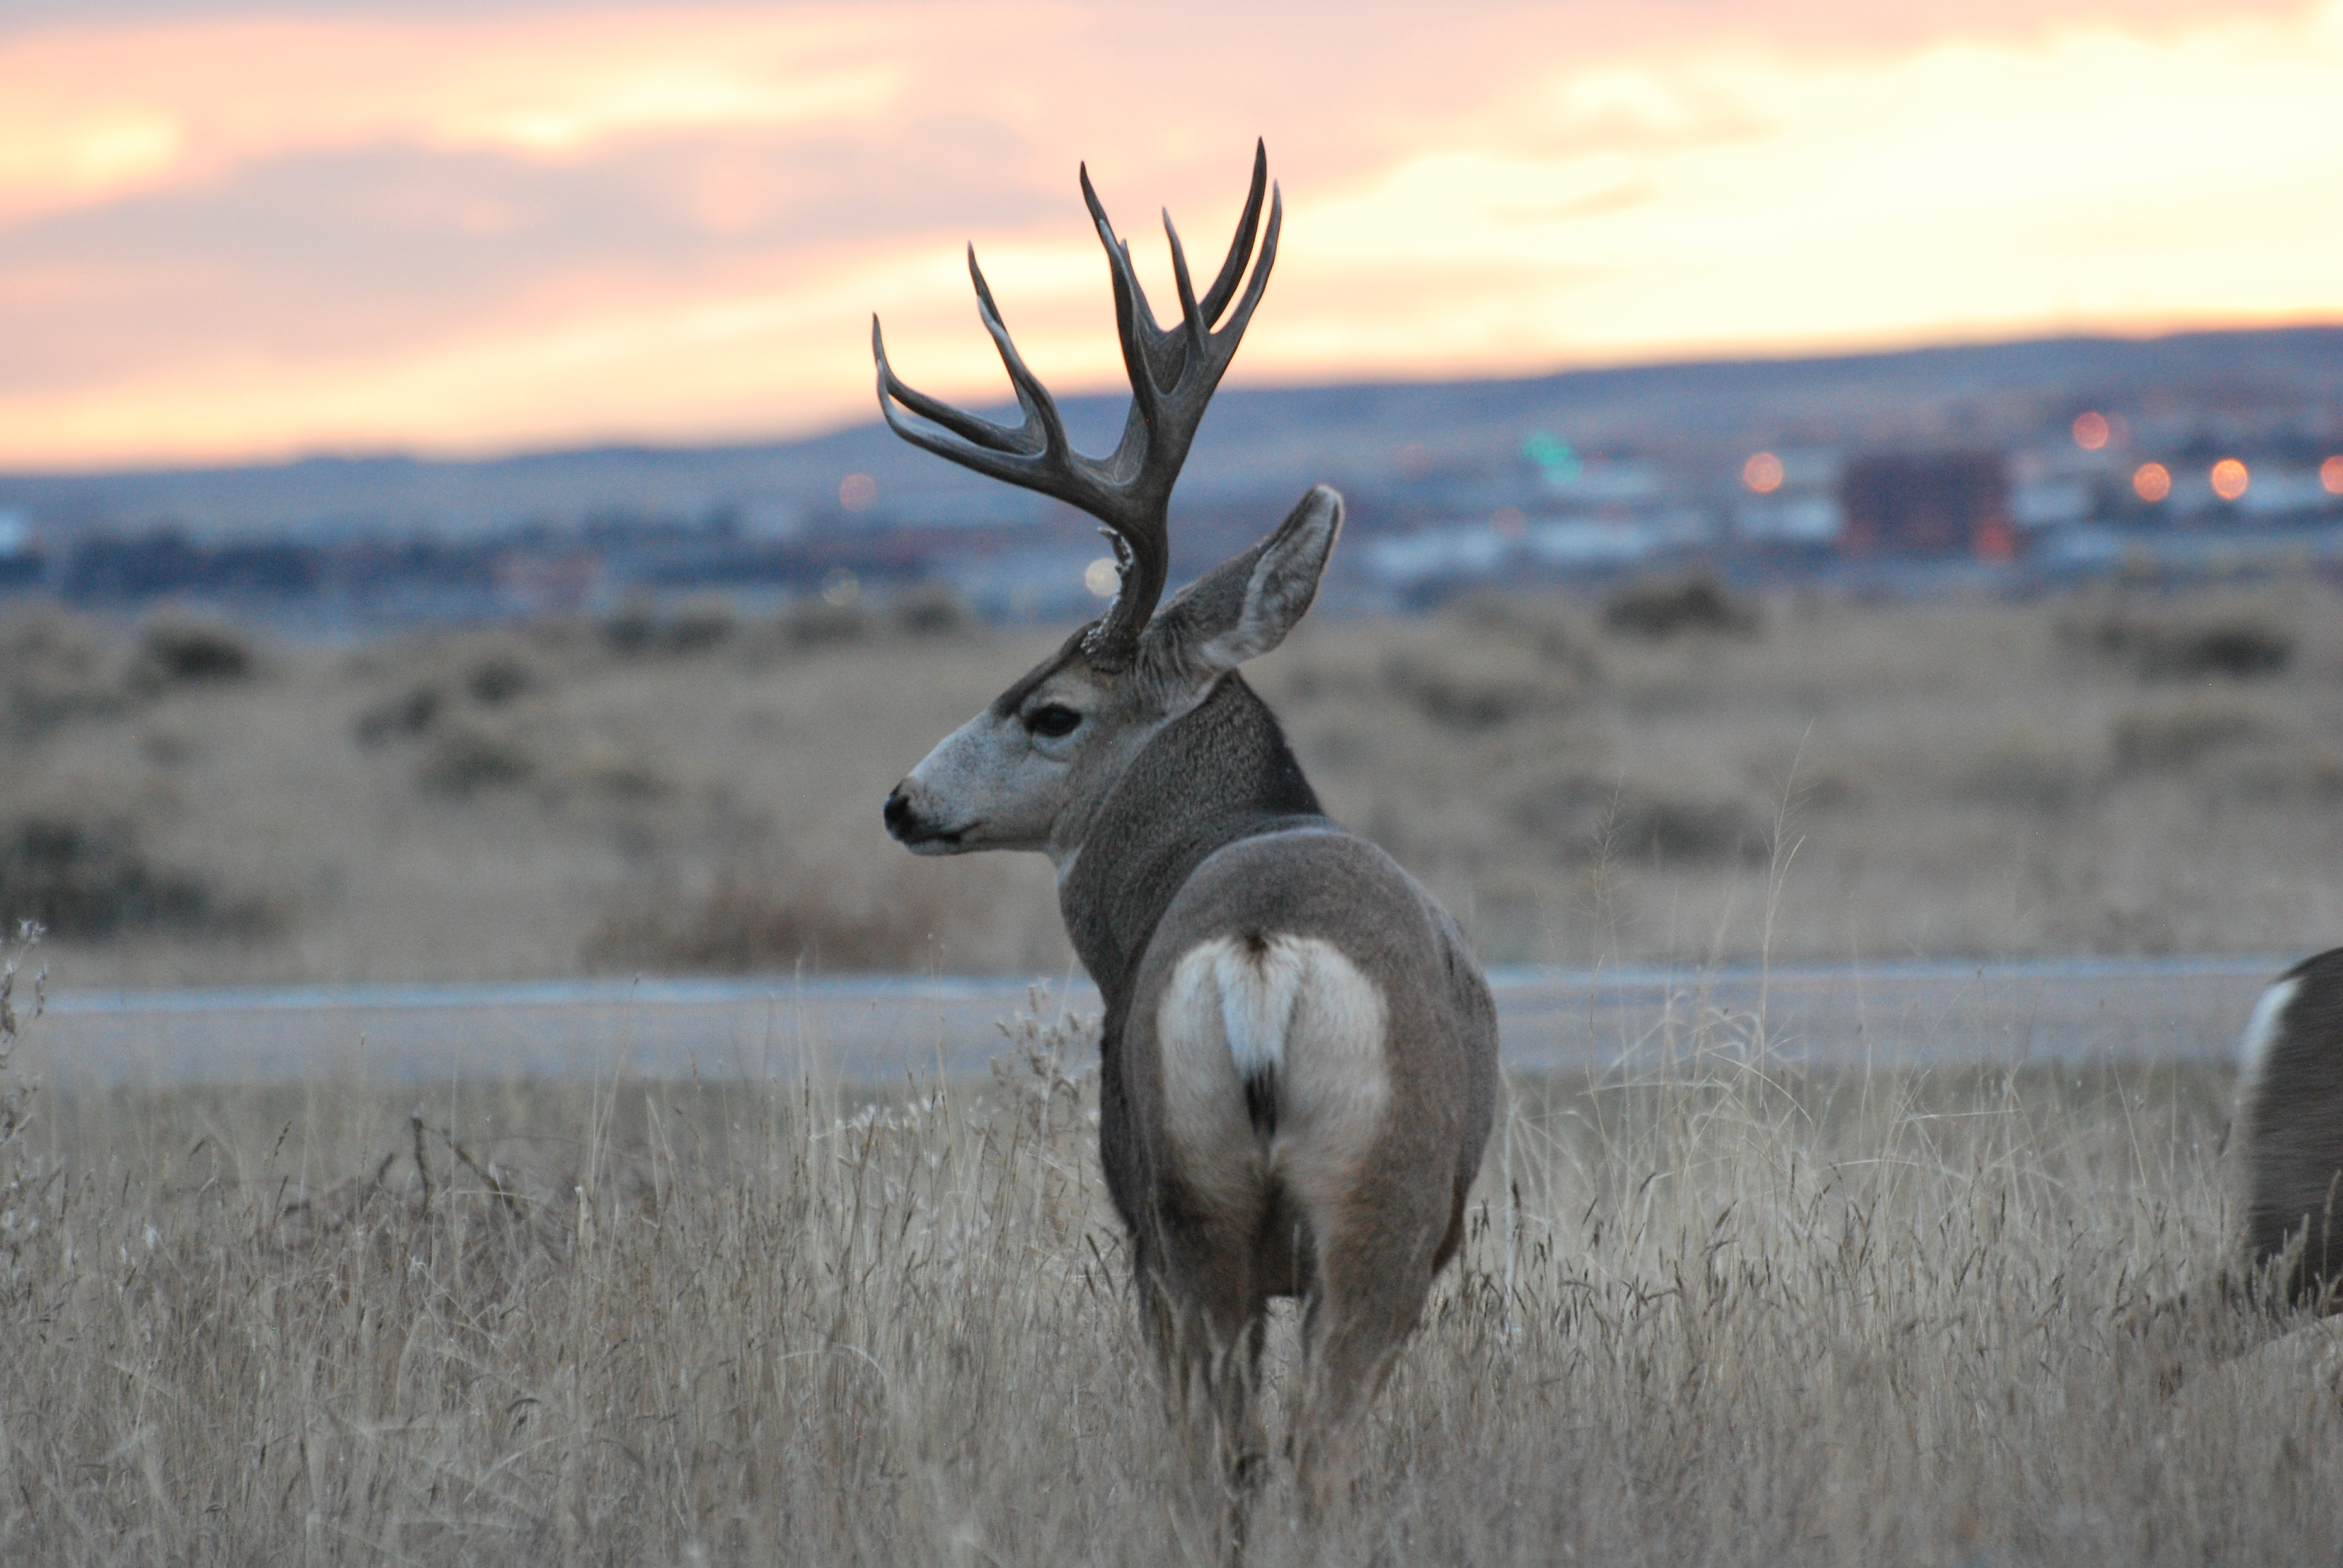 An image of a mule deer at sunset at Cherry Creek State Park on Nov. 22.